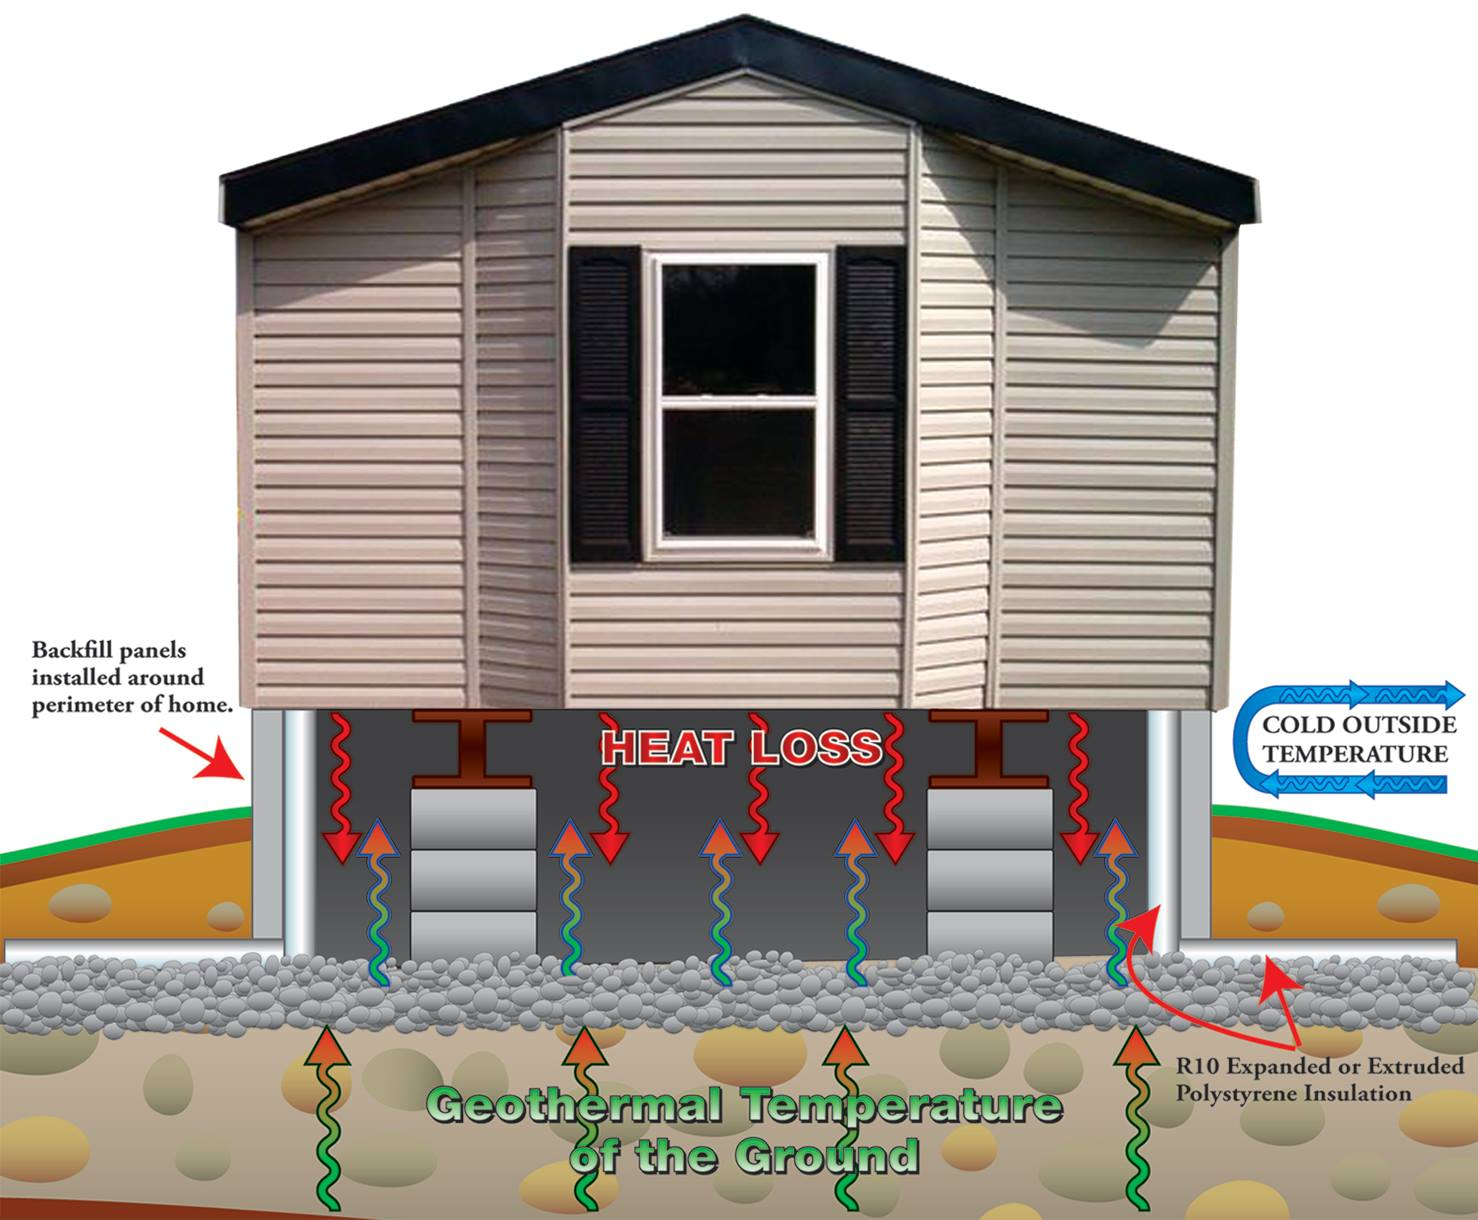 Insulated Skirting Question - mobile home university ... on mobile home skirting, manufactured home skirting panels, mobile home solar panels, mobile home doors, mobile home wall panels, mobile home shutters, mobile home drywall panels, mobile home outside panels, mobile homes with vinyl siding, mobile homes log home, mobile home electrical panels, mobile home ceiling panels, mobile home interior panels, mobile home stone, lowe's insulation panels, mobile home awnings, cement board skirting panels, mobile home flooring, mobile home roofing panels, mobile home insulation,